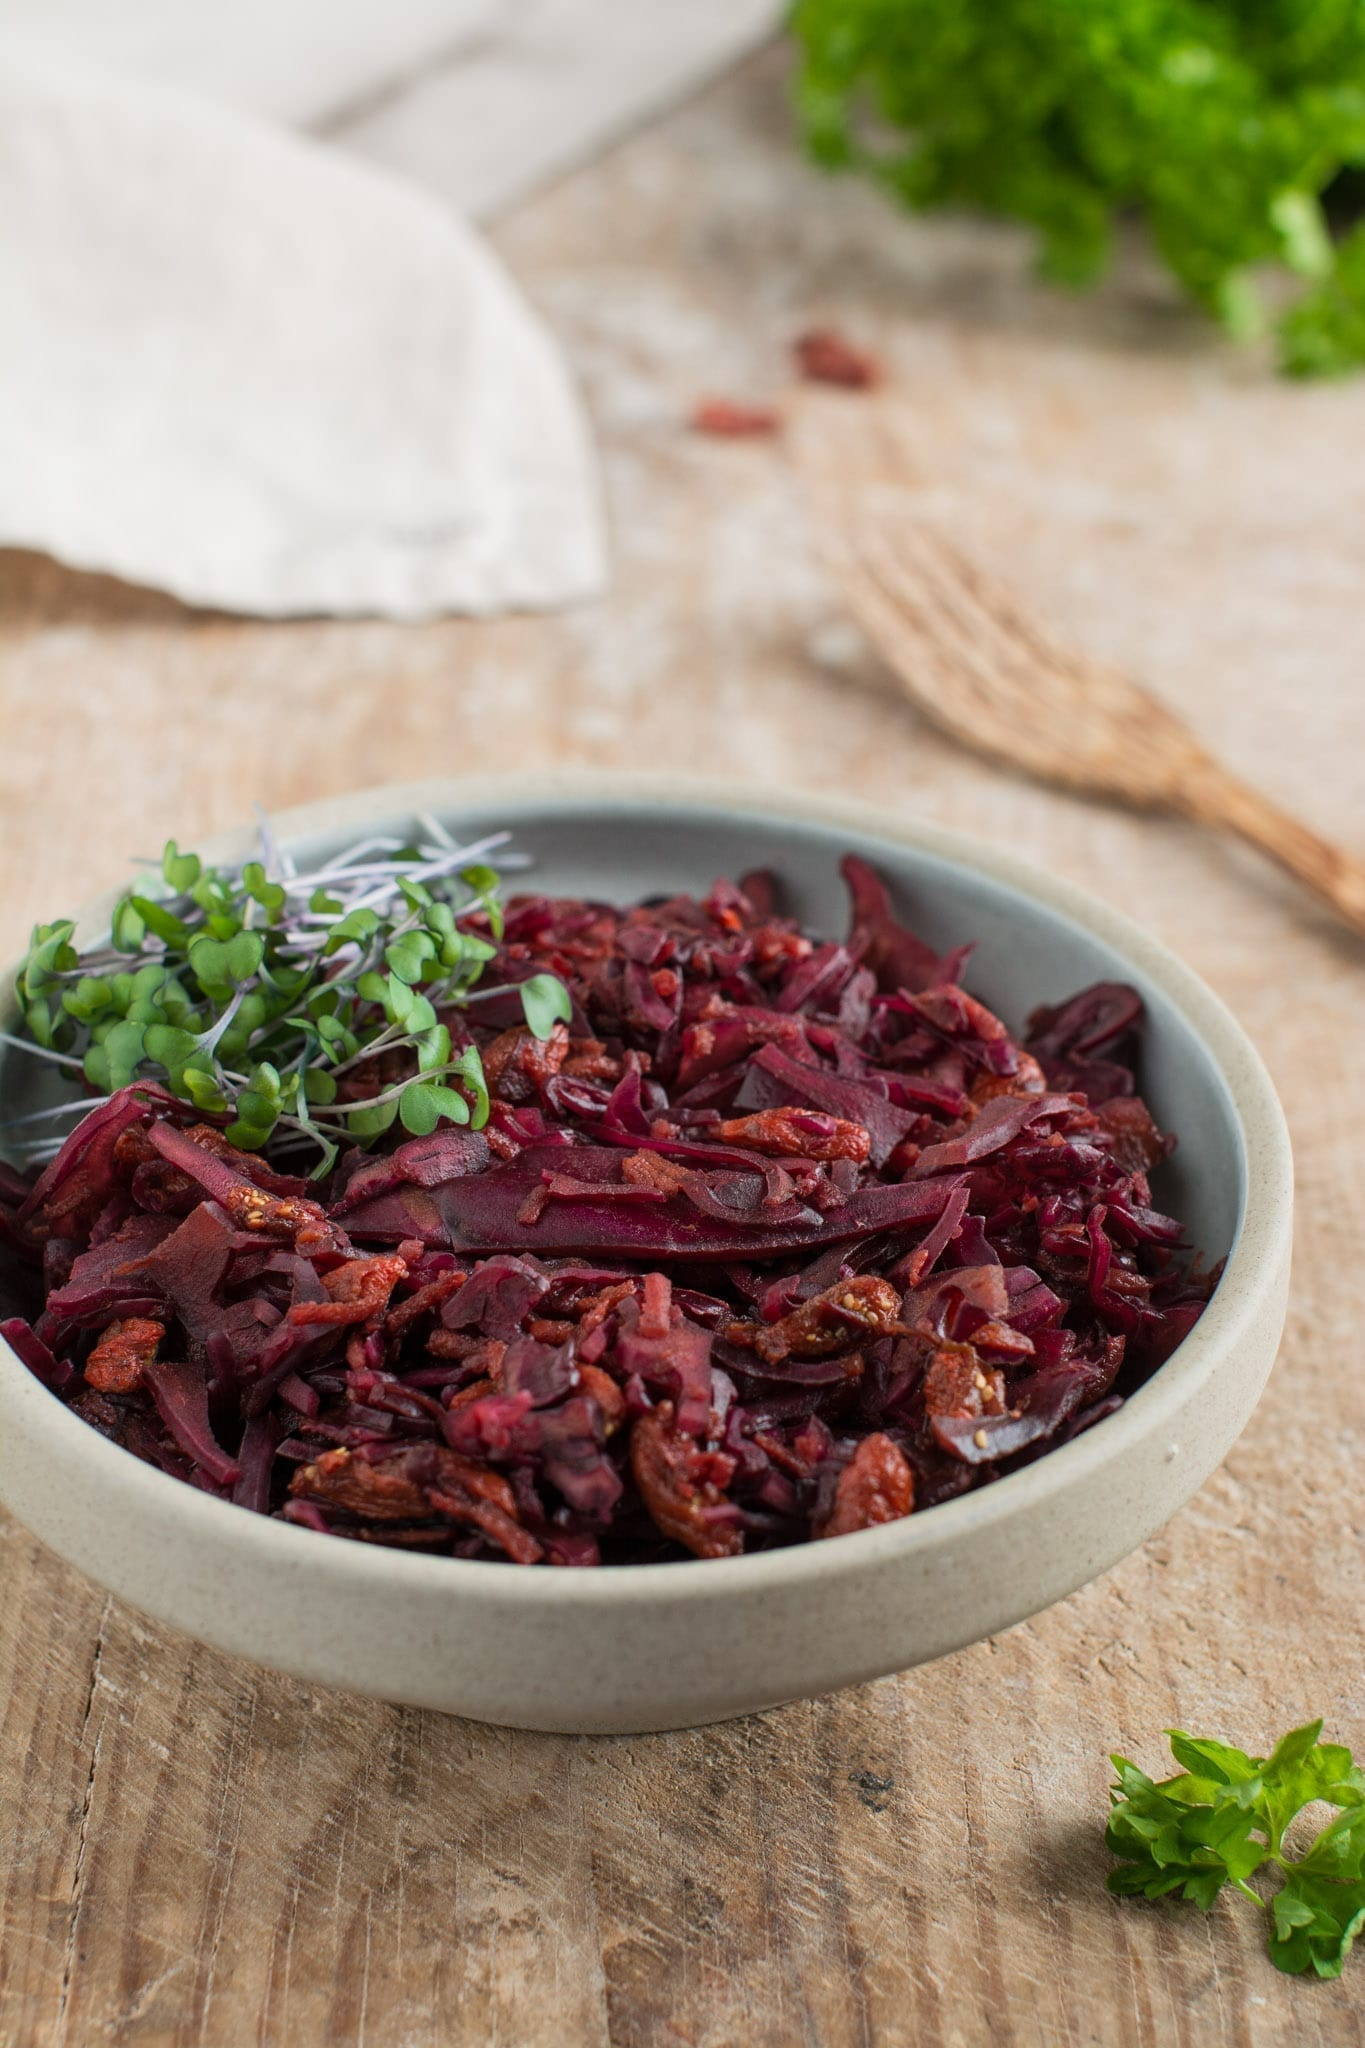 Vegan red cabbage coleslaw makes an excellent side dish packed with vitamins with an extra boost of friendly bacteria from miso paste.